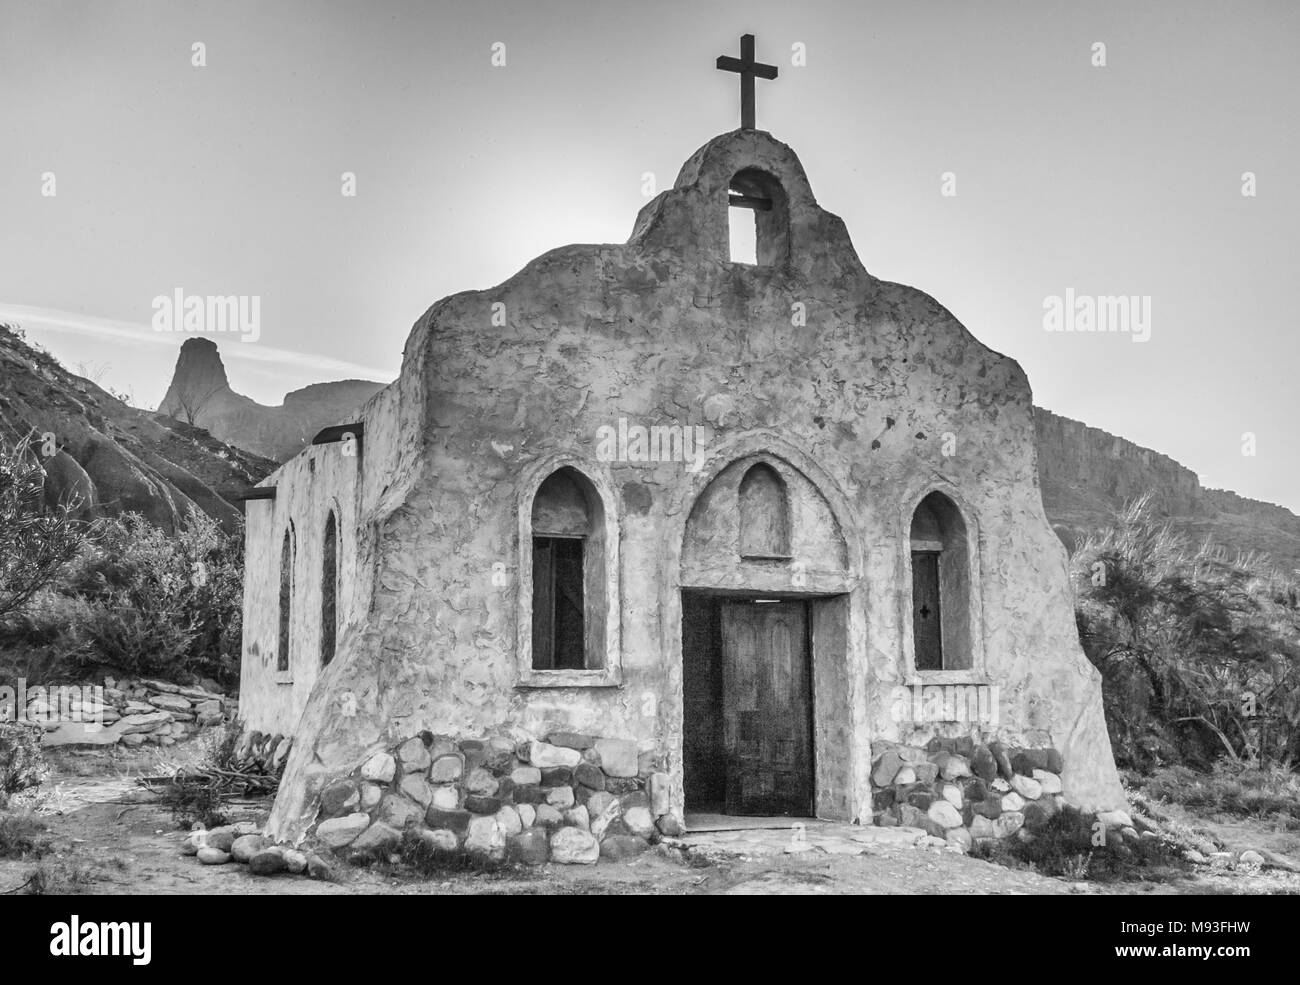 Adobe mission church built for movie set 'Streets of Laredo', on the Rio Grande River in Texas. - Stock Image